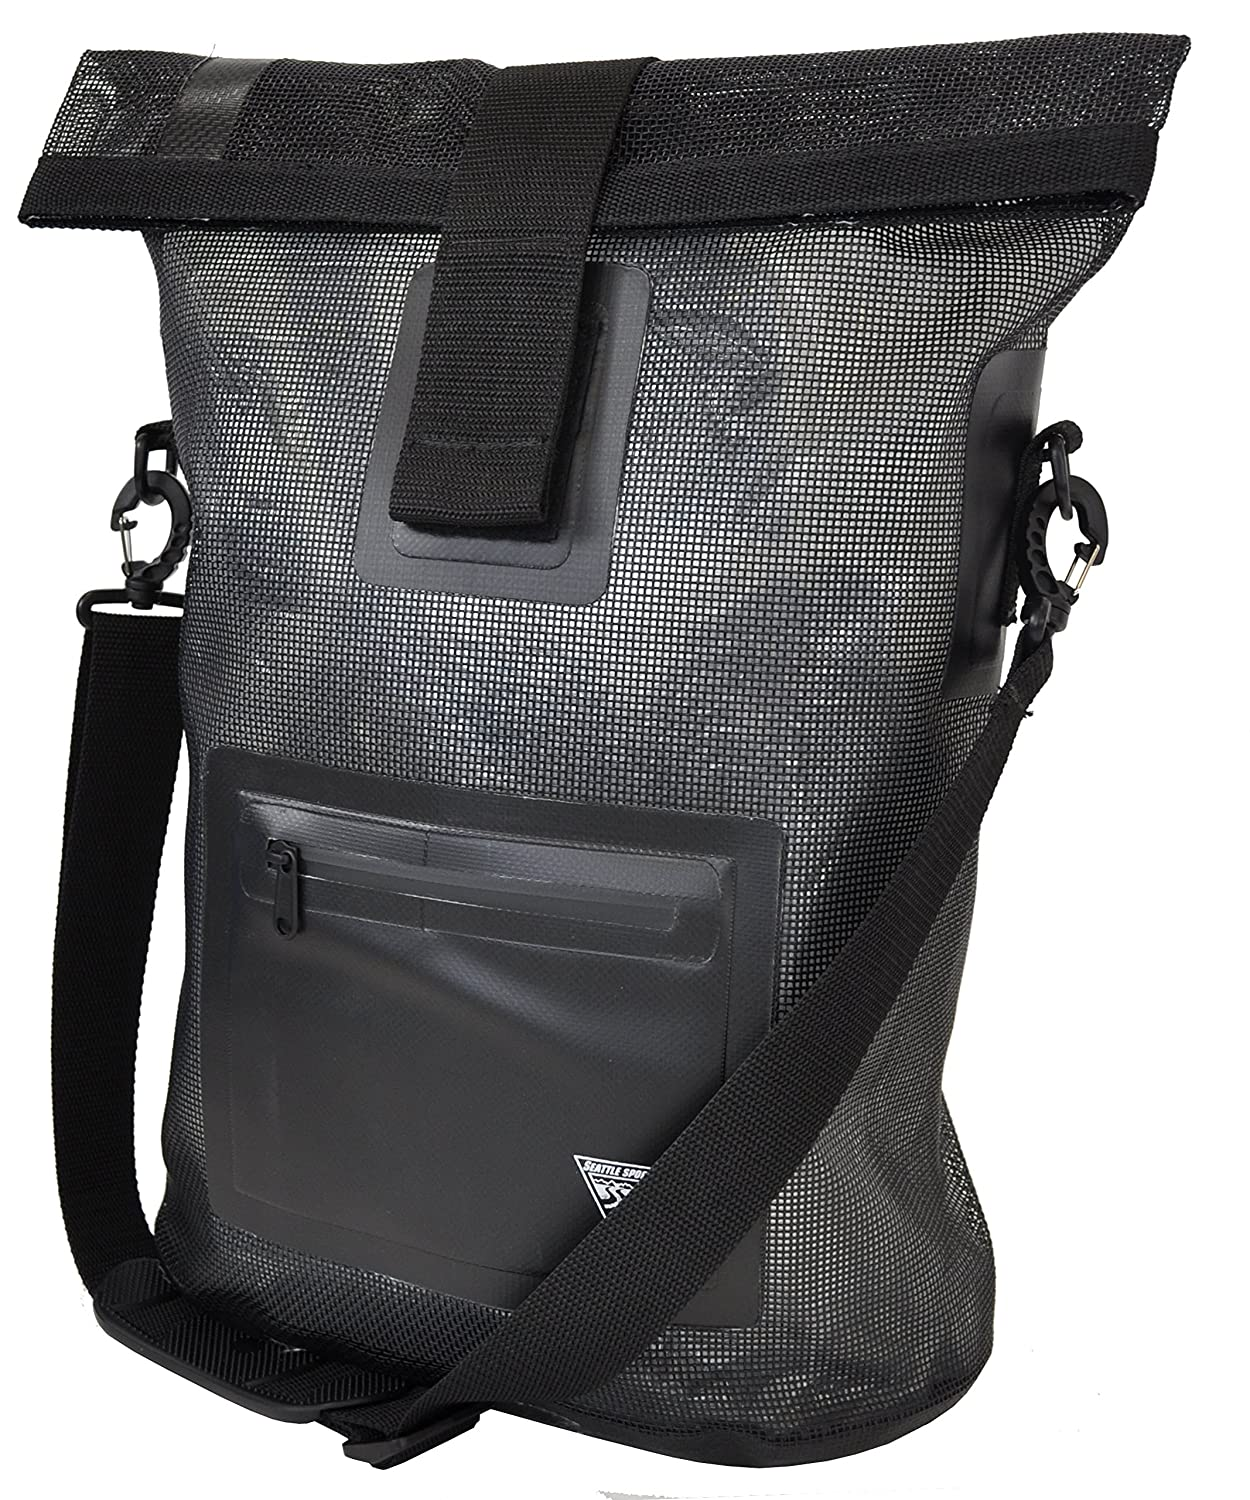 Seattle Sports Mesh Tote, Black by Seattle Sports 020115